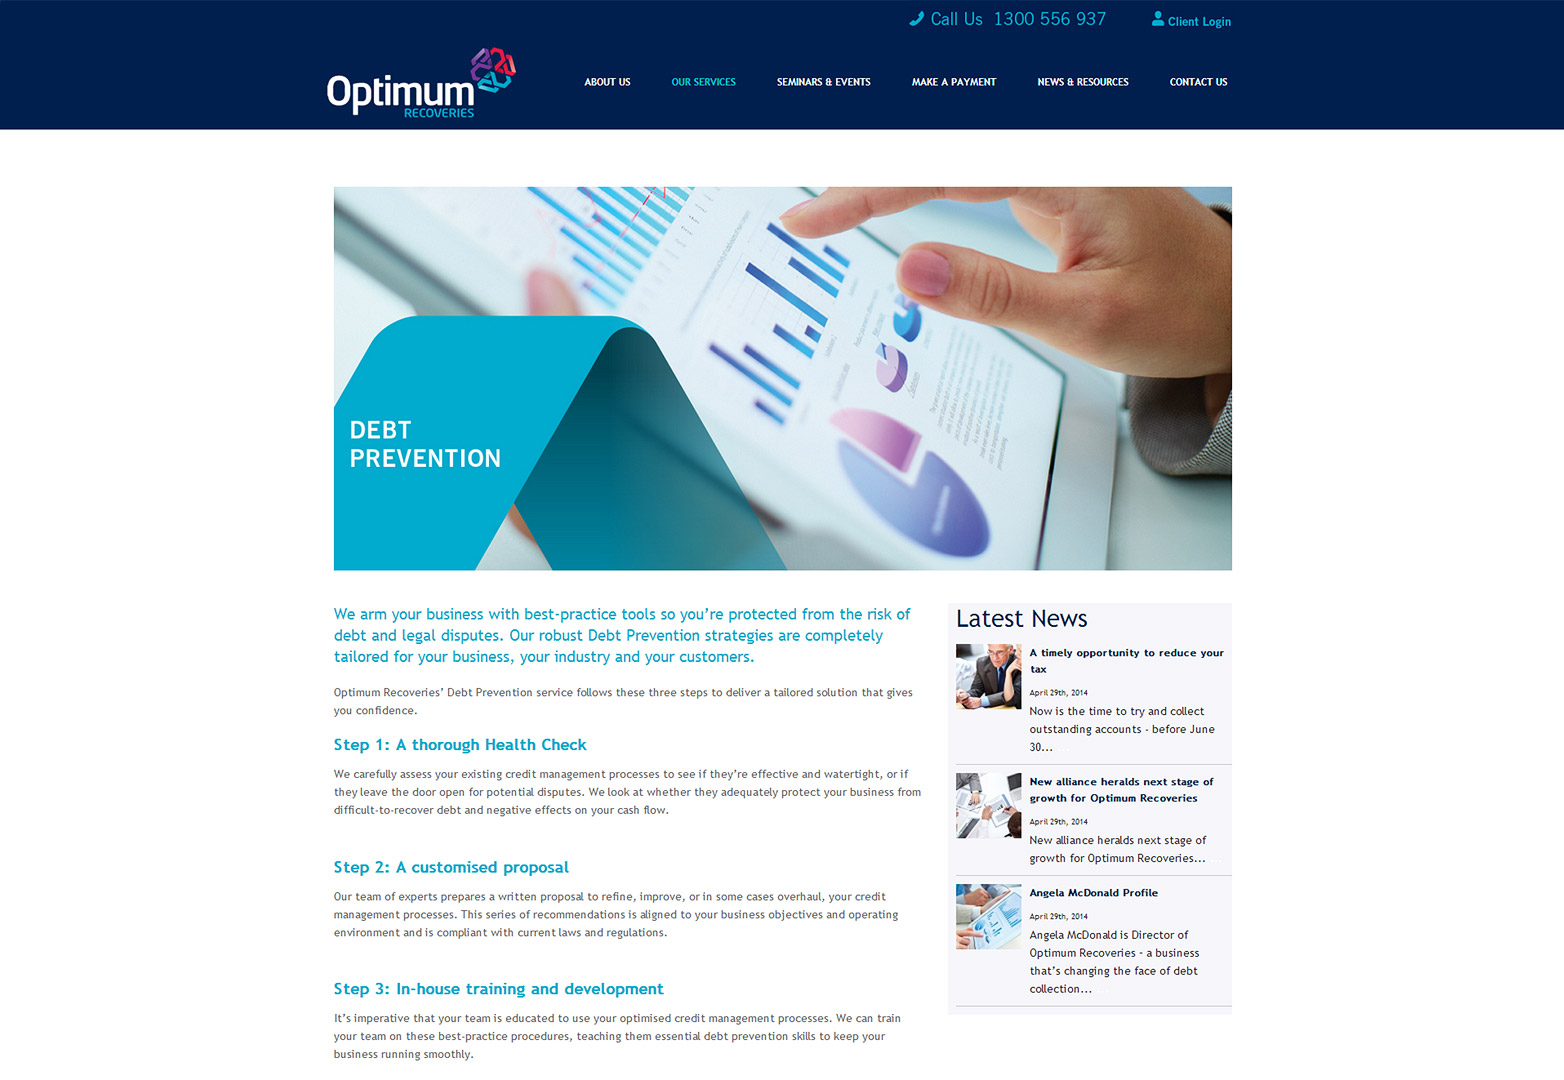 webdesign_optimum02